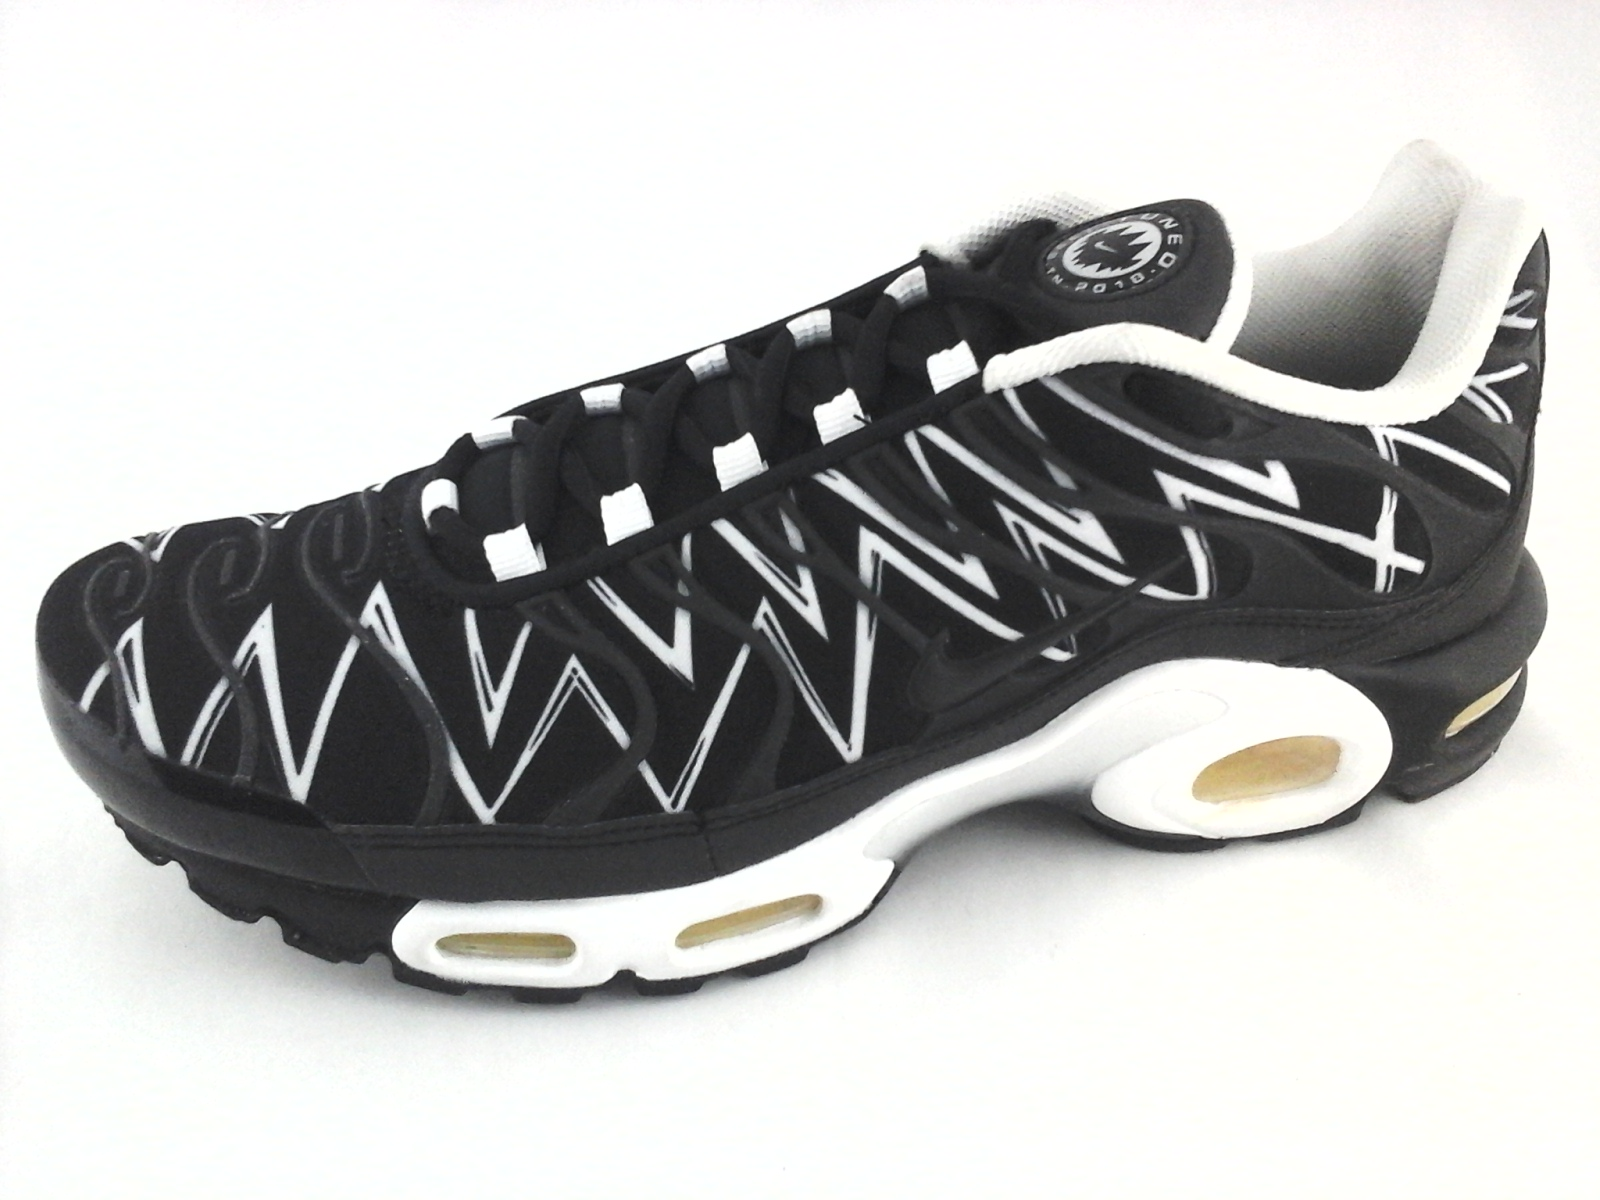 uk availability bf4ce eed71 NIKE AIR Max Plus Tuned TN The Shark Teeth AJ6311-001 Sneakers Mens US 10  EU 44